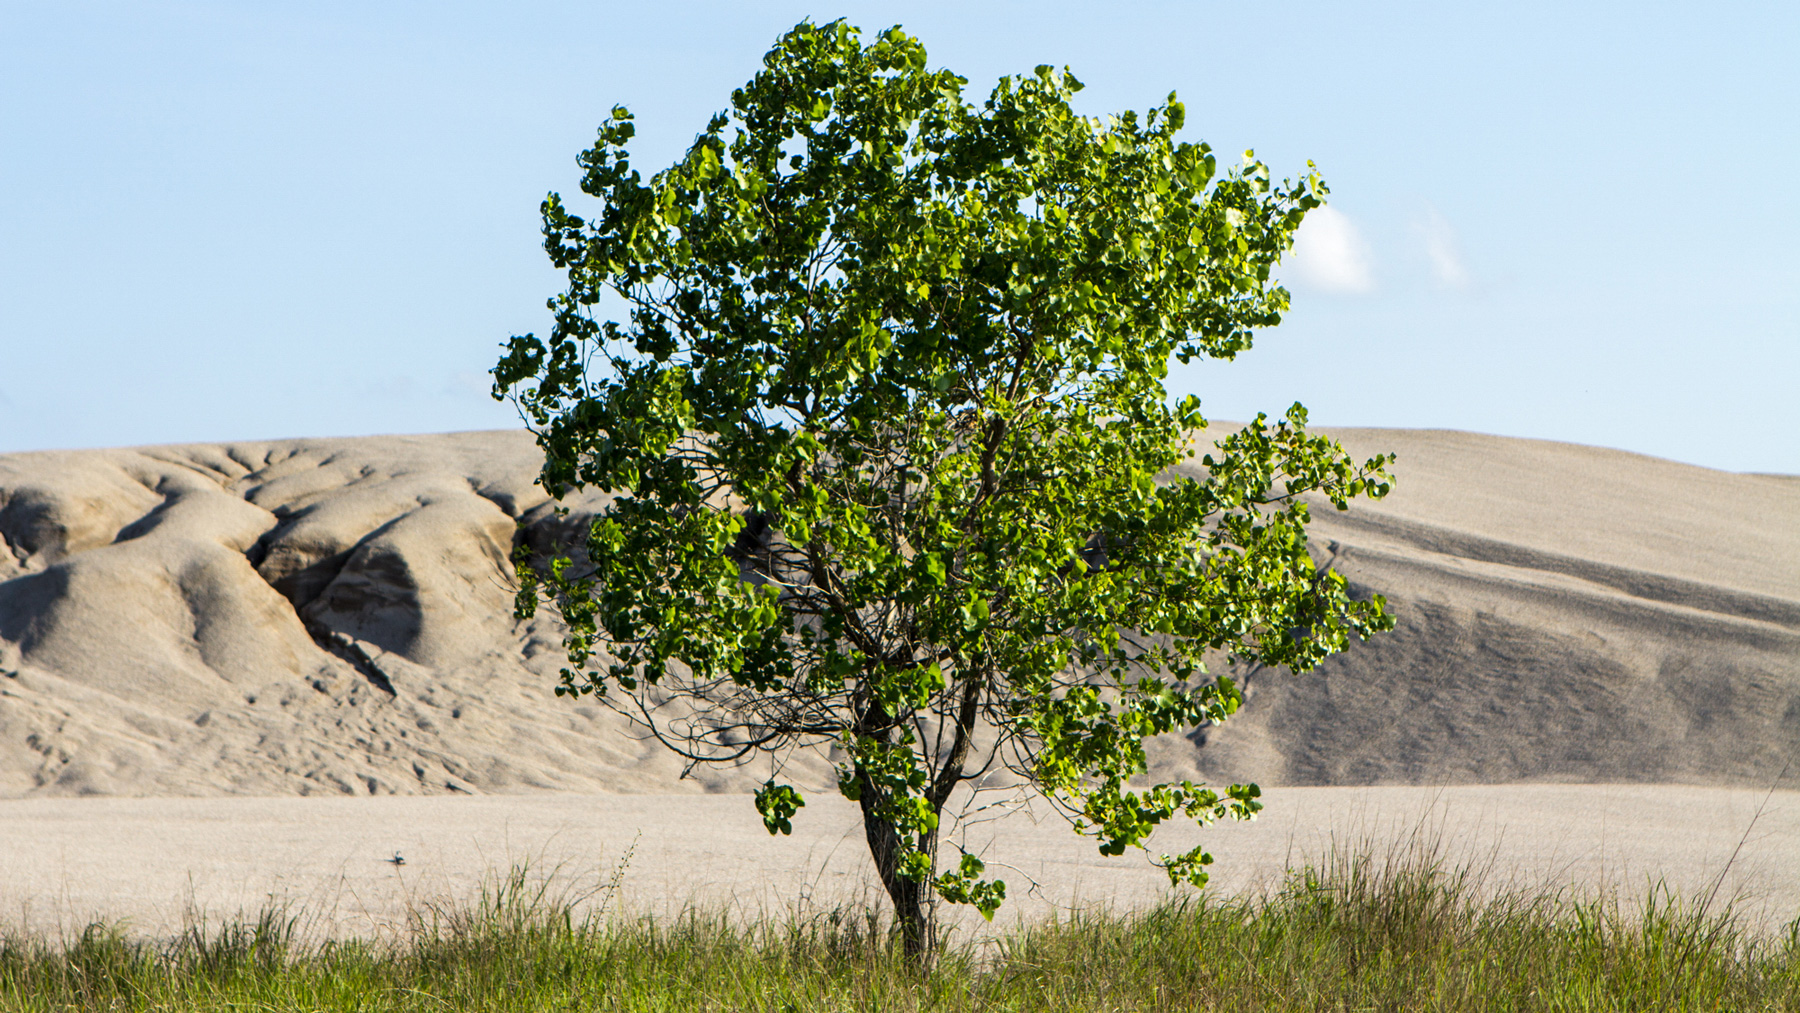 A tree stands in front of a 	&#8220chat&#8221 pile, or dust contaminated with lead from mining, at the Tar Creek Superfund site in Picher, Okla. The site was one of the original Superfunds listed in 1983, yet work continues to clean up the drinking water in the area. (Jasmine Spearing-Bowen/News21)